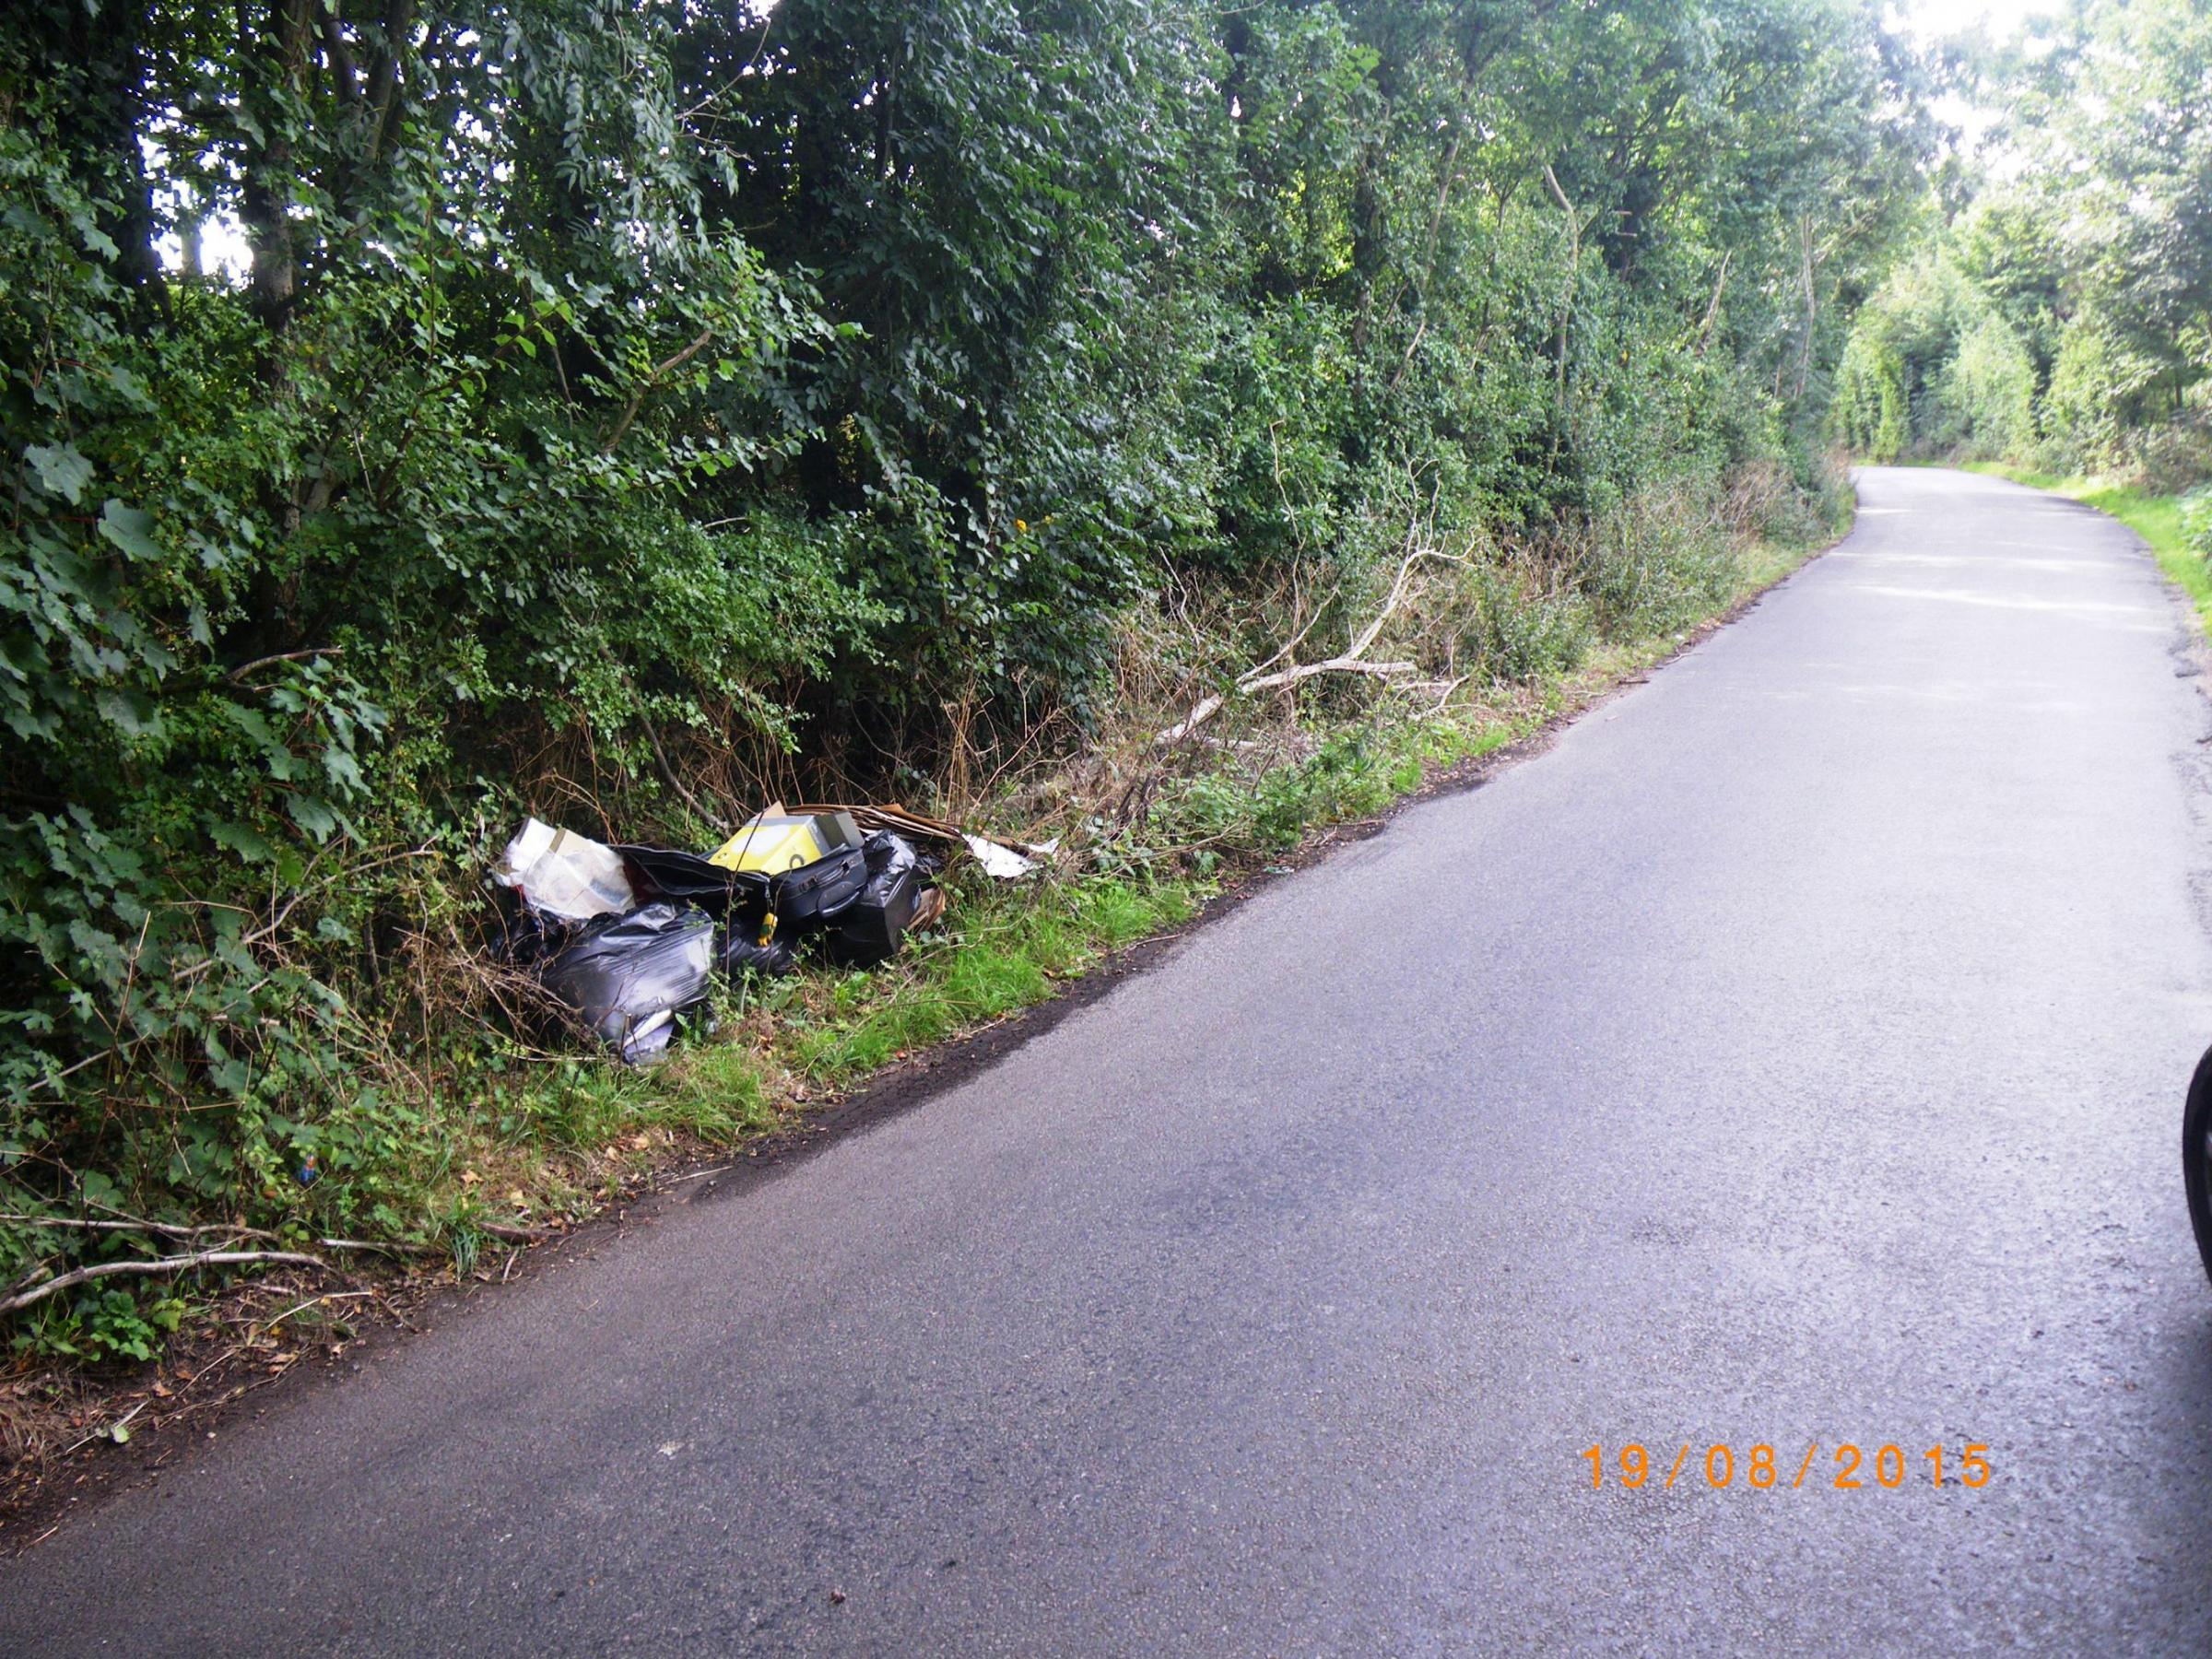 Artur Woszcyna, 25, of Clare Road, Maidenhead, pleaded guilty at High Wycombe Magistrates Court on January 20 to an offence of illegally dumping controlled waste in Burnham.